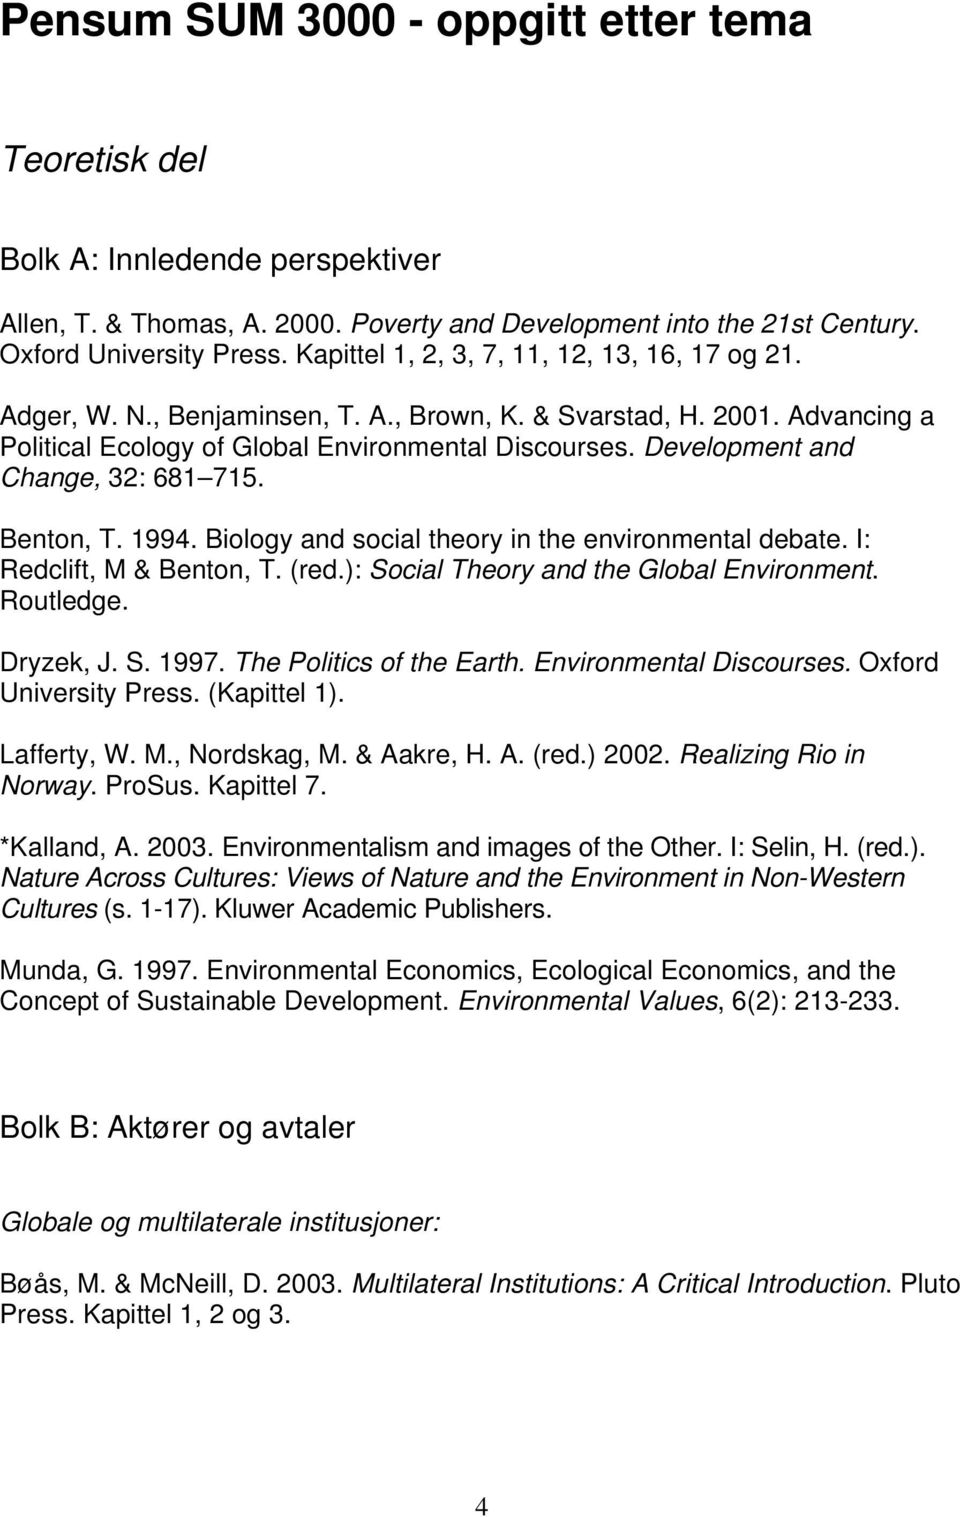 Development and Change, 32: 681 715. Benton, T. 1994. Biology and social theory in the environmental debate. I: Redclift, M & Benton, T. (red.): Social Theory and the Global Environment. Dryzek, J. S. 1997.